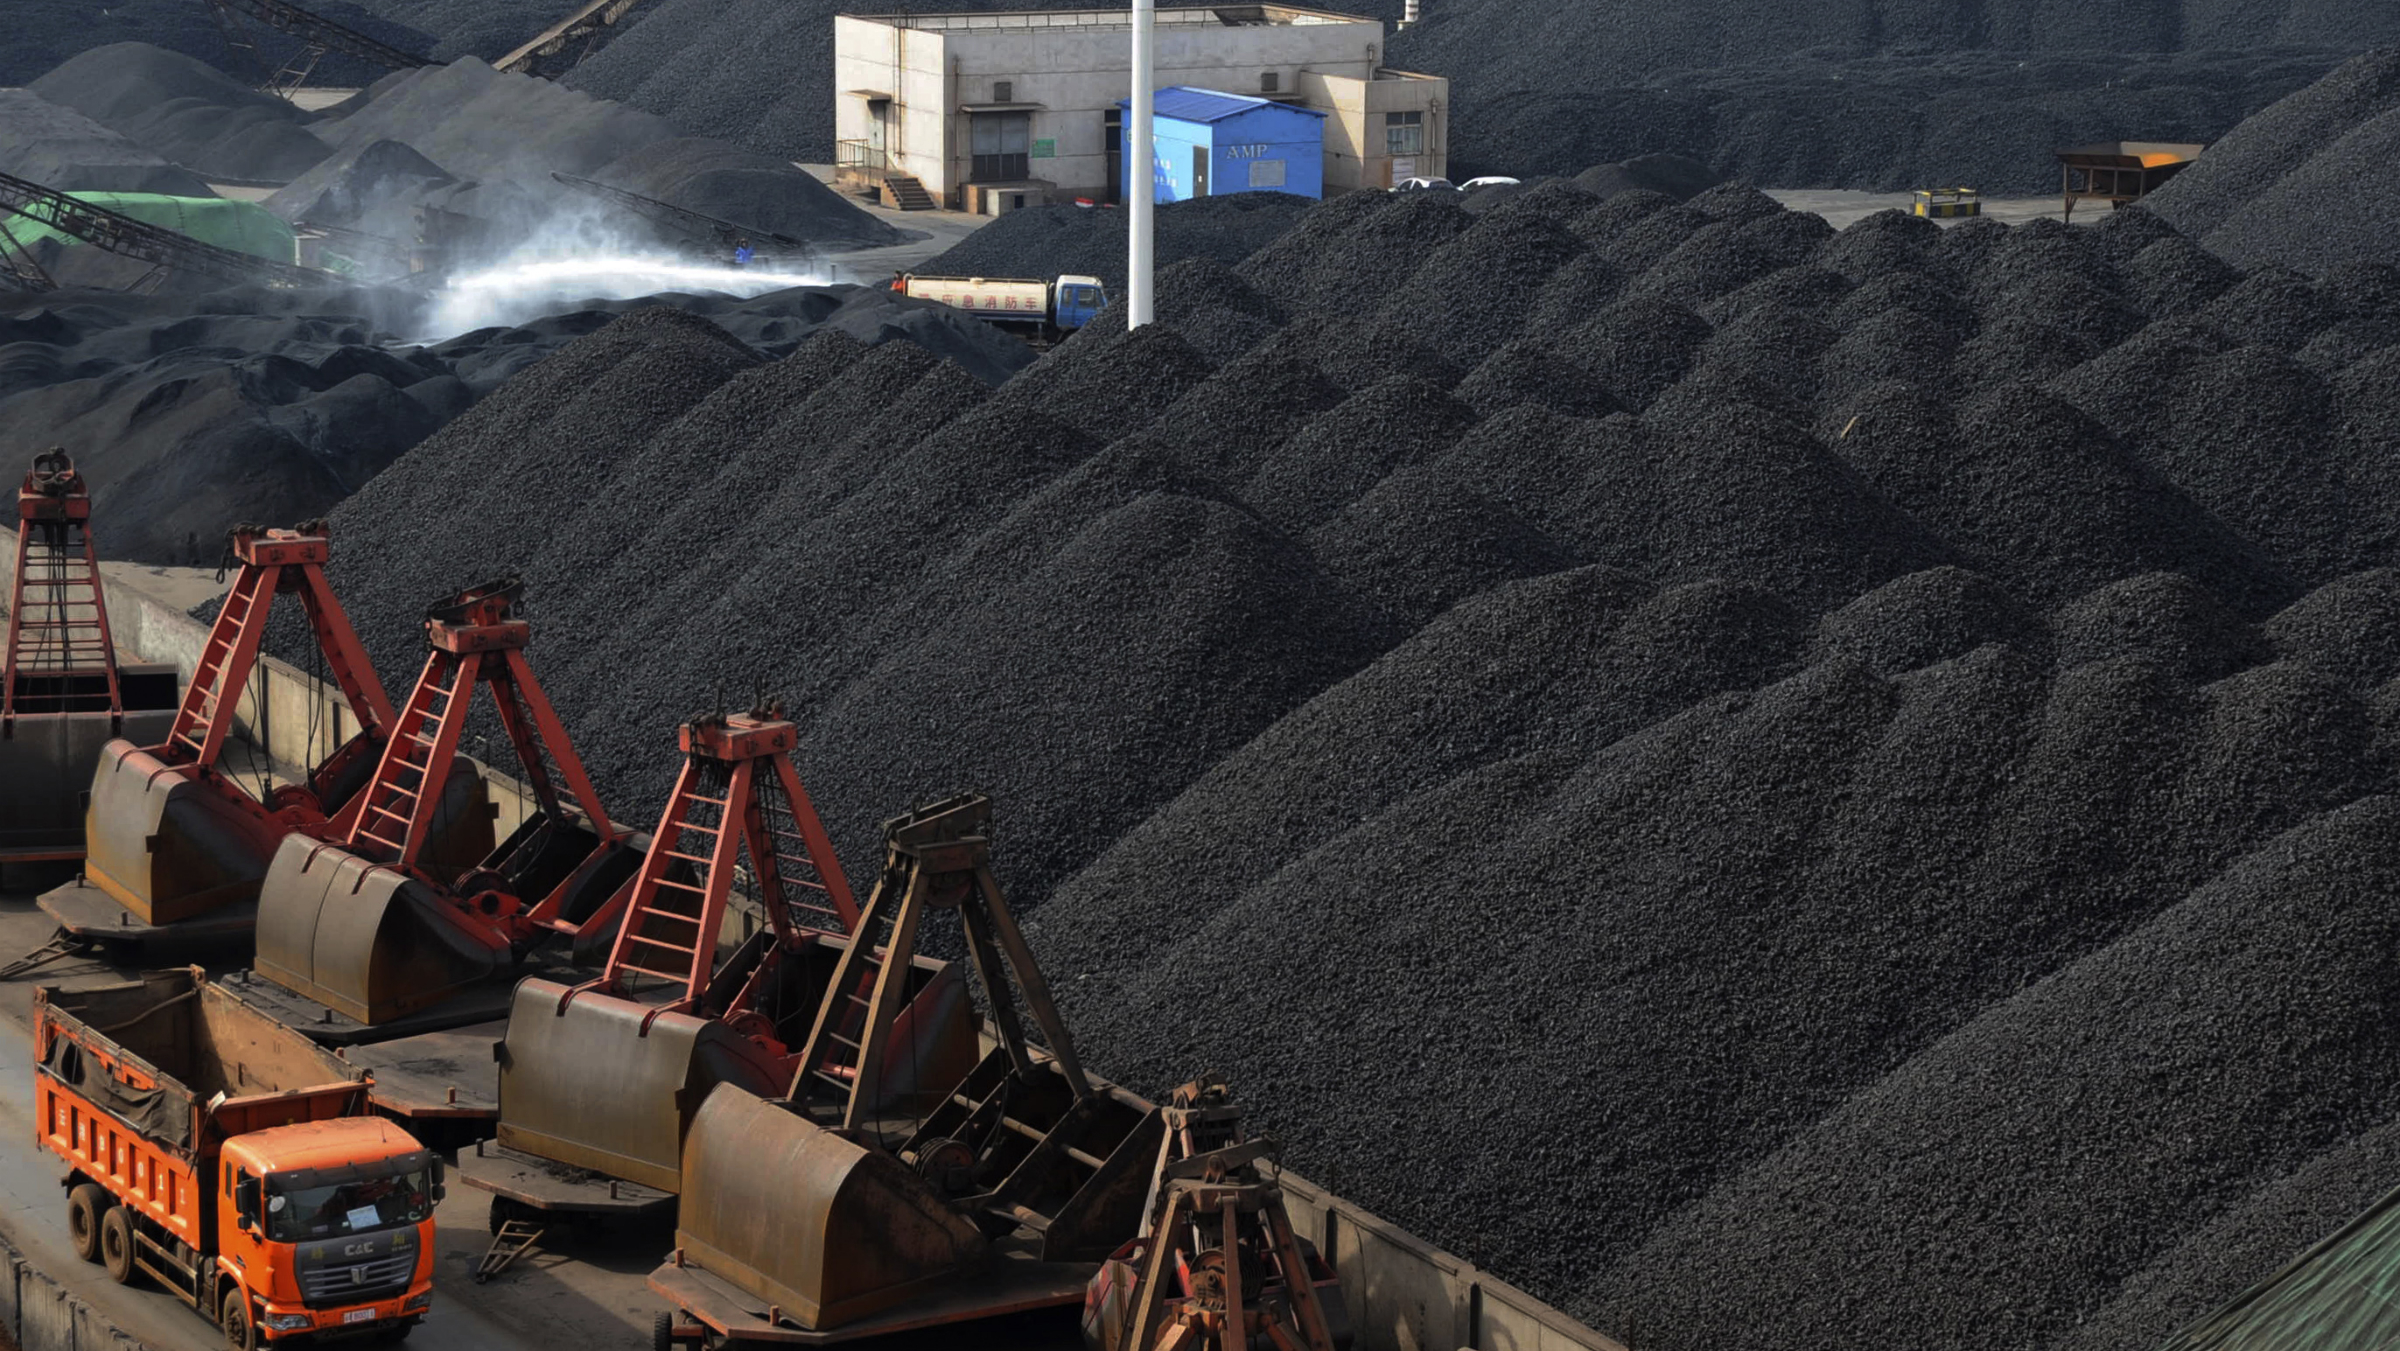 A truck drives past as a worker sprays water at a coal pier of Lianyungang port, Jiangsu province February 26, 2012. China's power consumption is likely to grow 8.8 percent annually between 2011 and 2015 to 6.02-6.61 trillion kilowatt hours, the China Securities Journal said on Monday, citing the China Electricity Council, an association of power producers. Picture taken February 26, 2012. REUTERS/China Daily